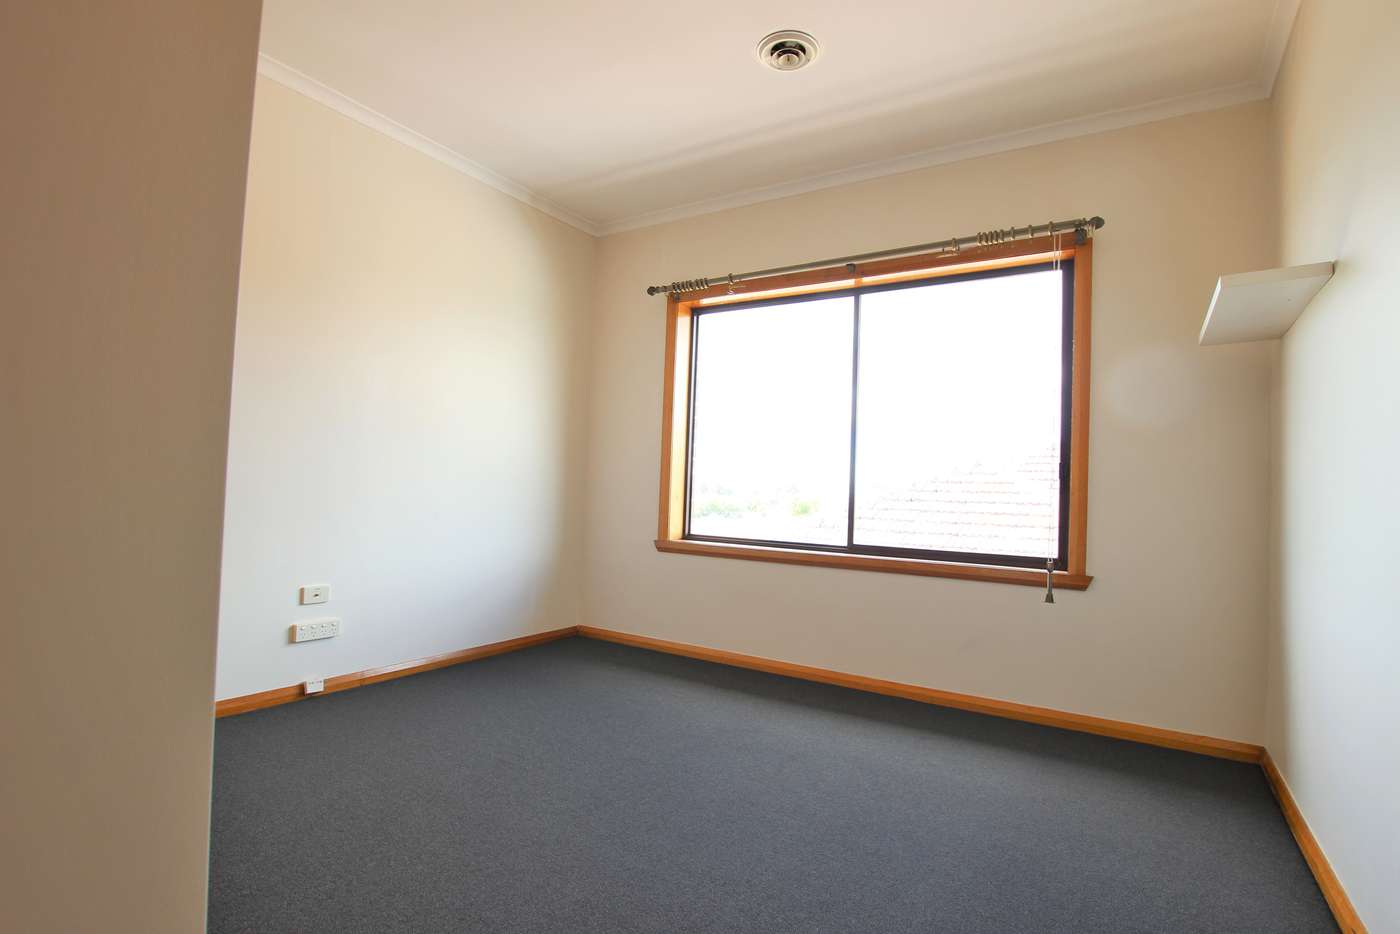 Sixth view of Homely apartment listing, 2/86 McBryde Street, Fawkner VIC 3060